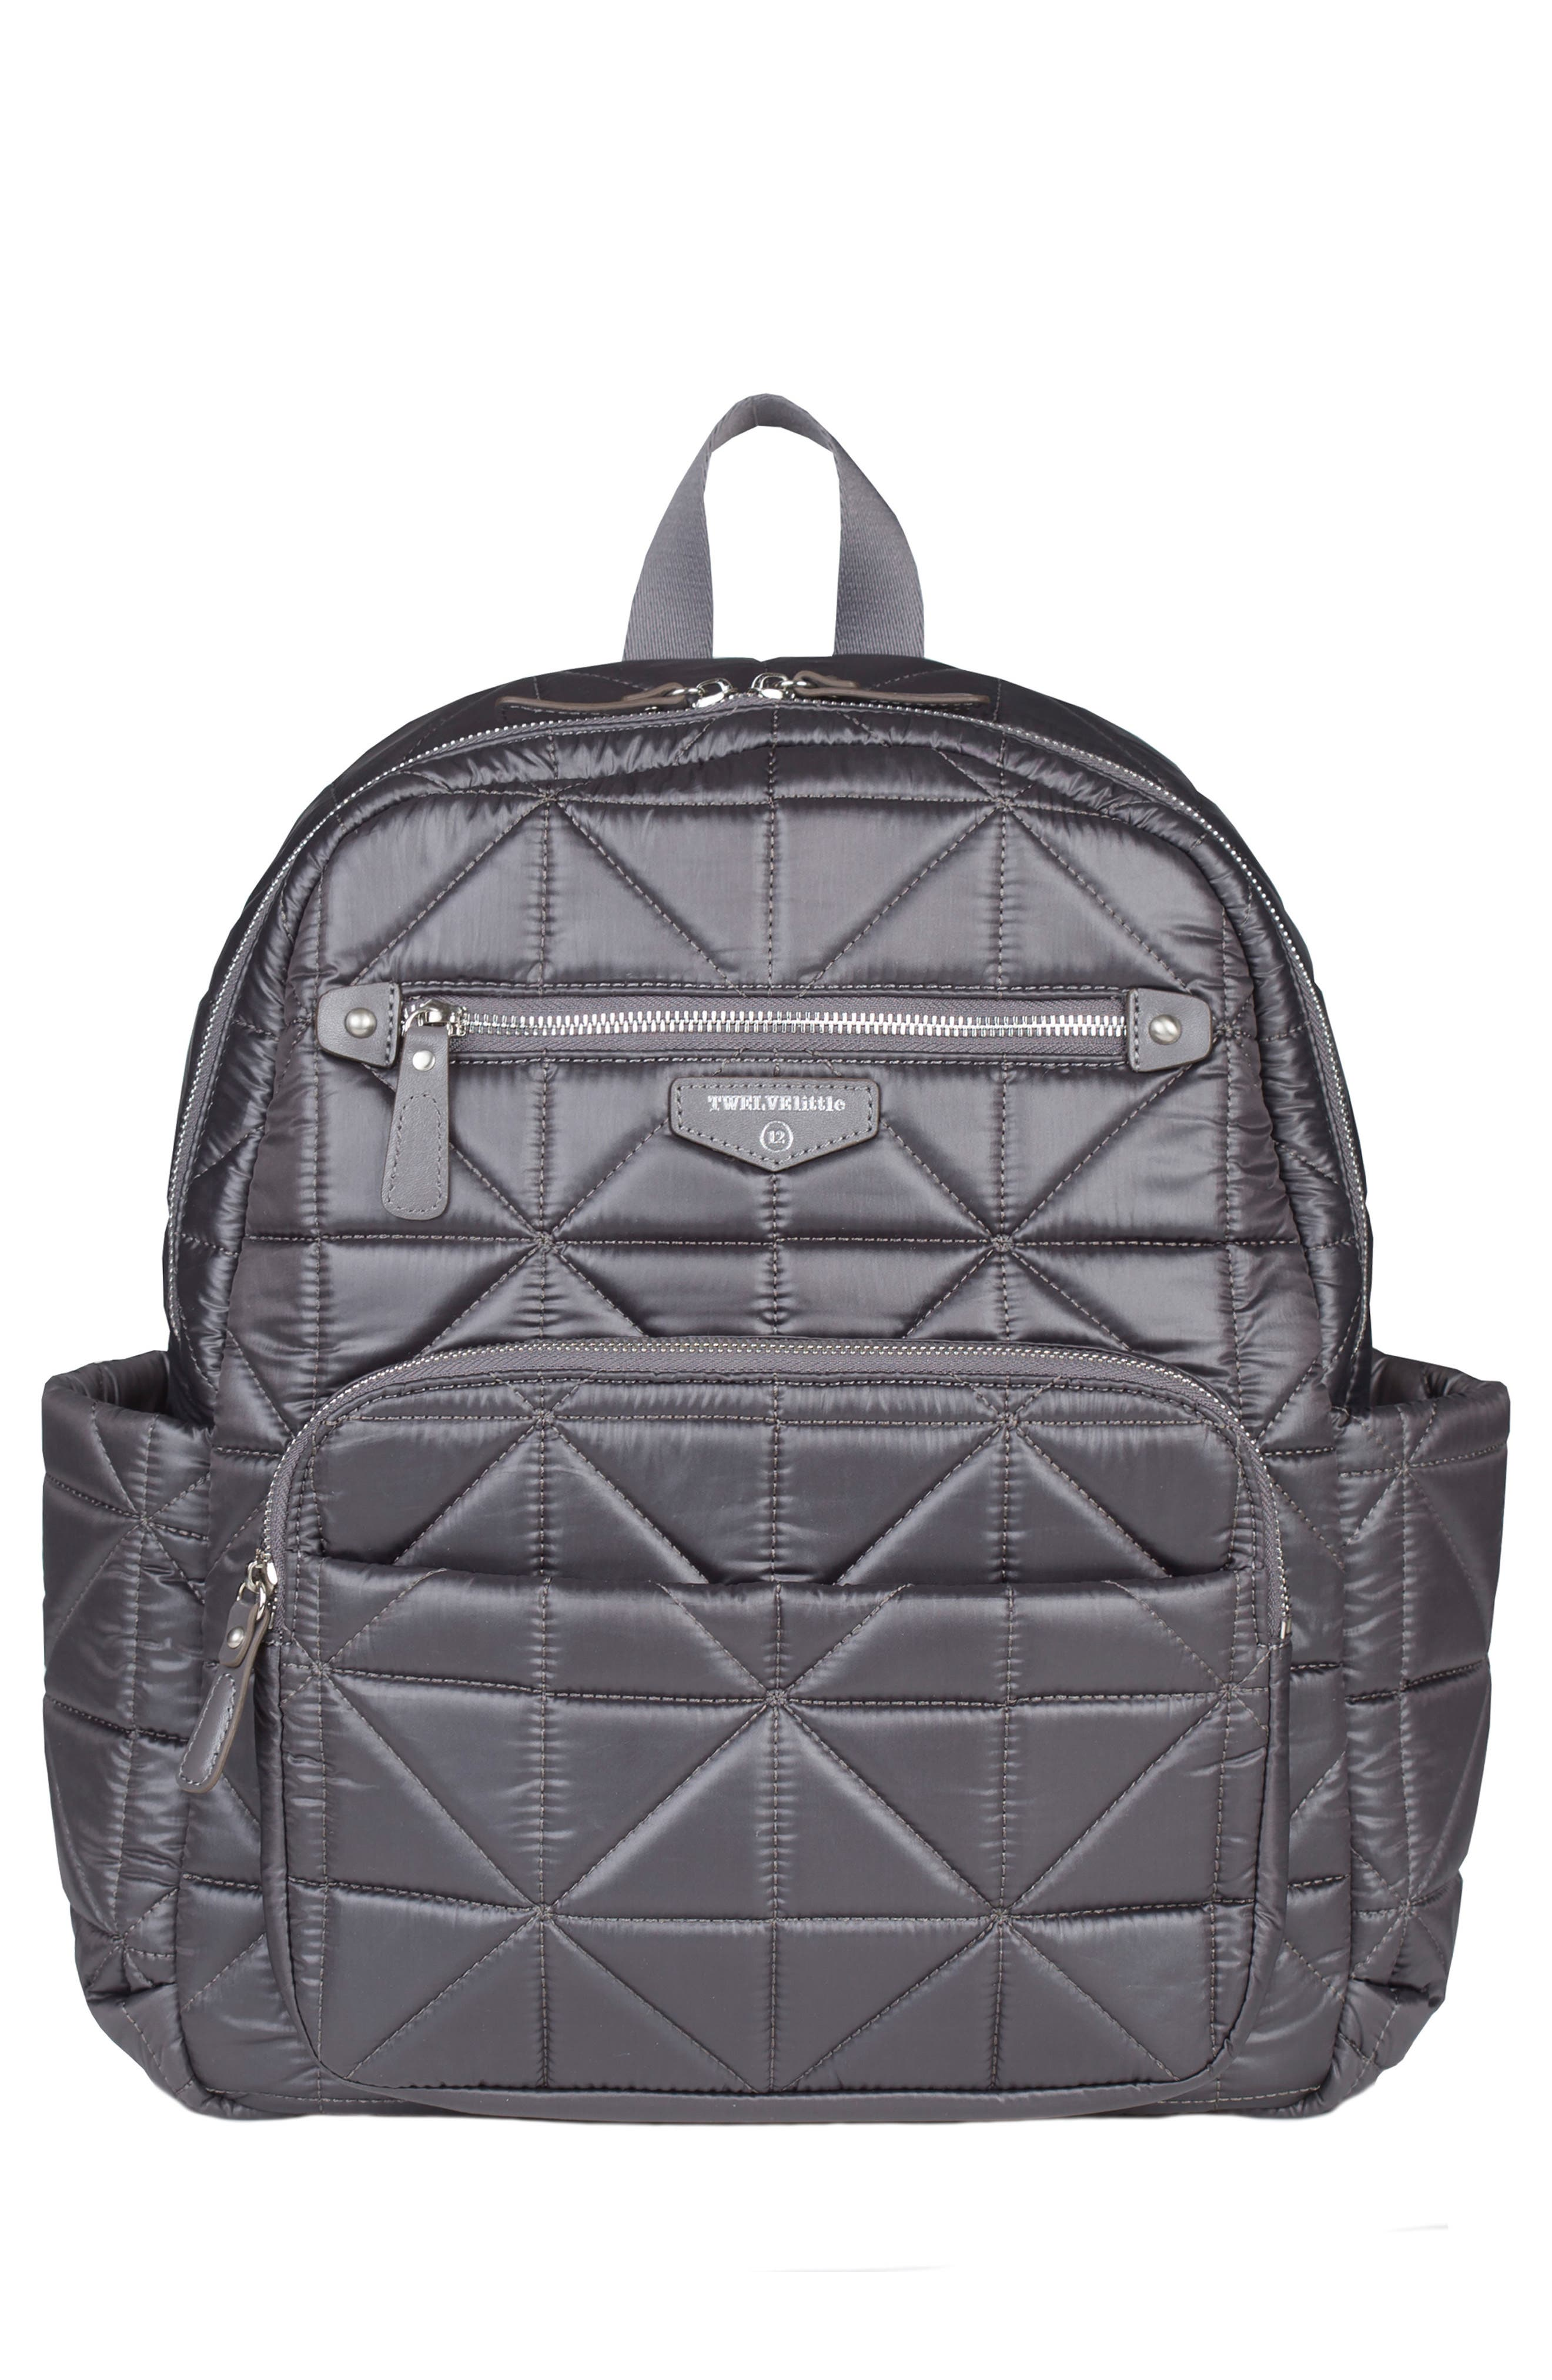 TWELVElittle Companion Quilted Nylon Diaper Backpack